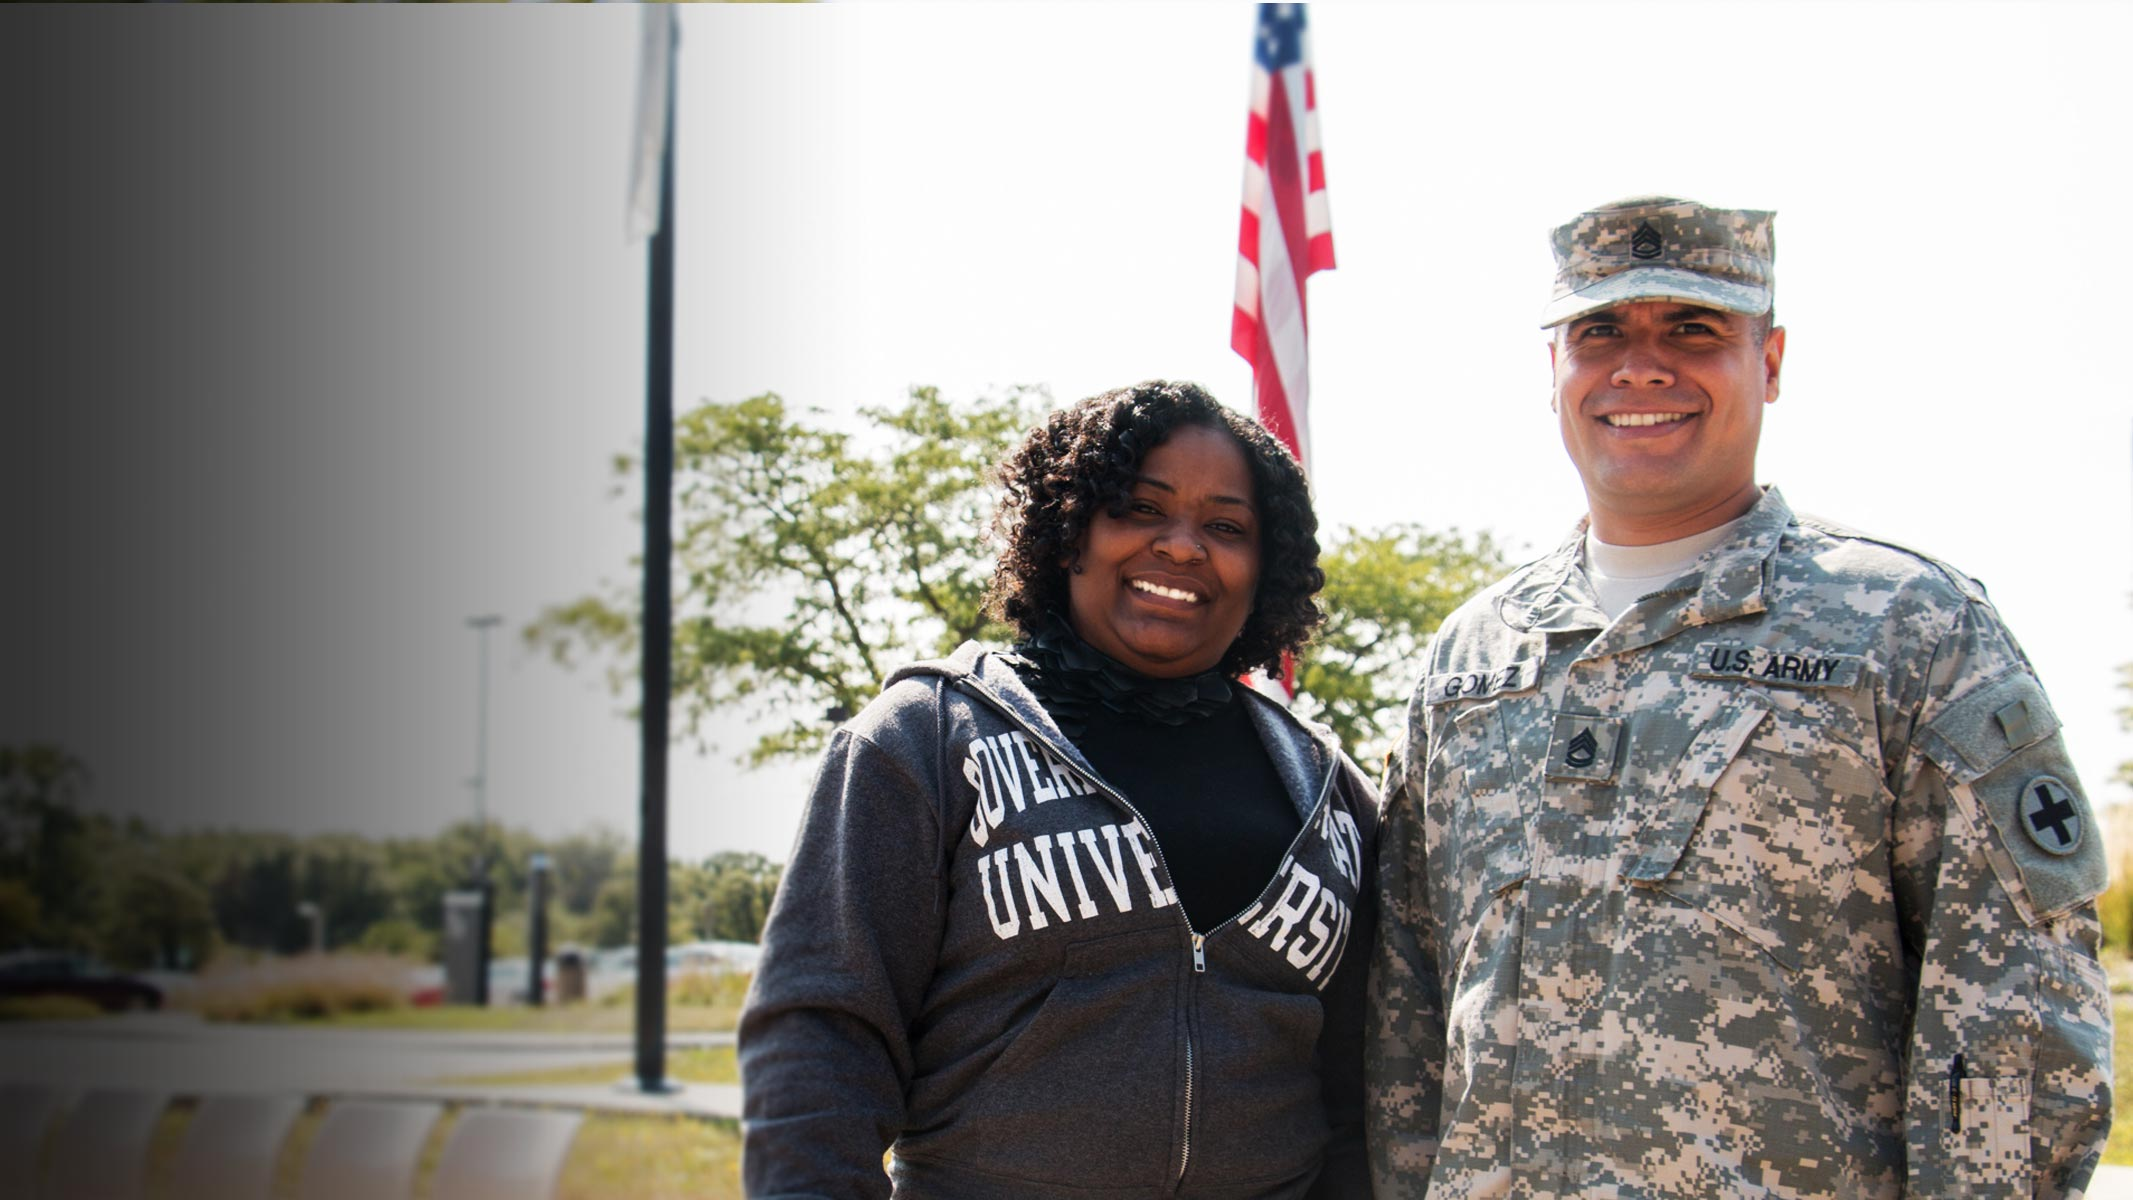 GSU Veterand Military Personnell at GSU's campus